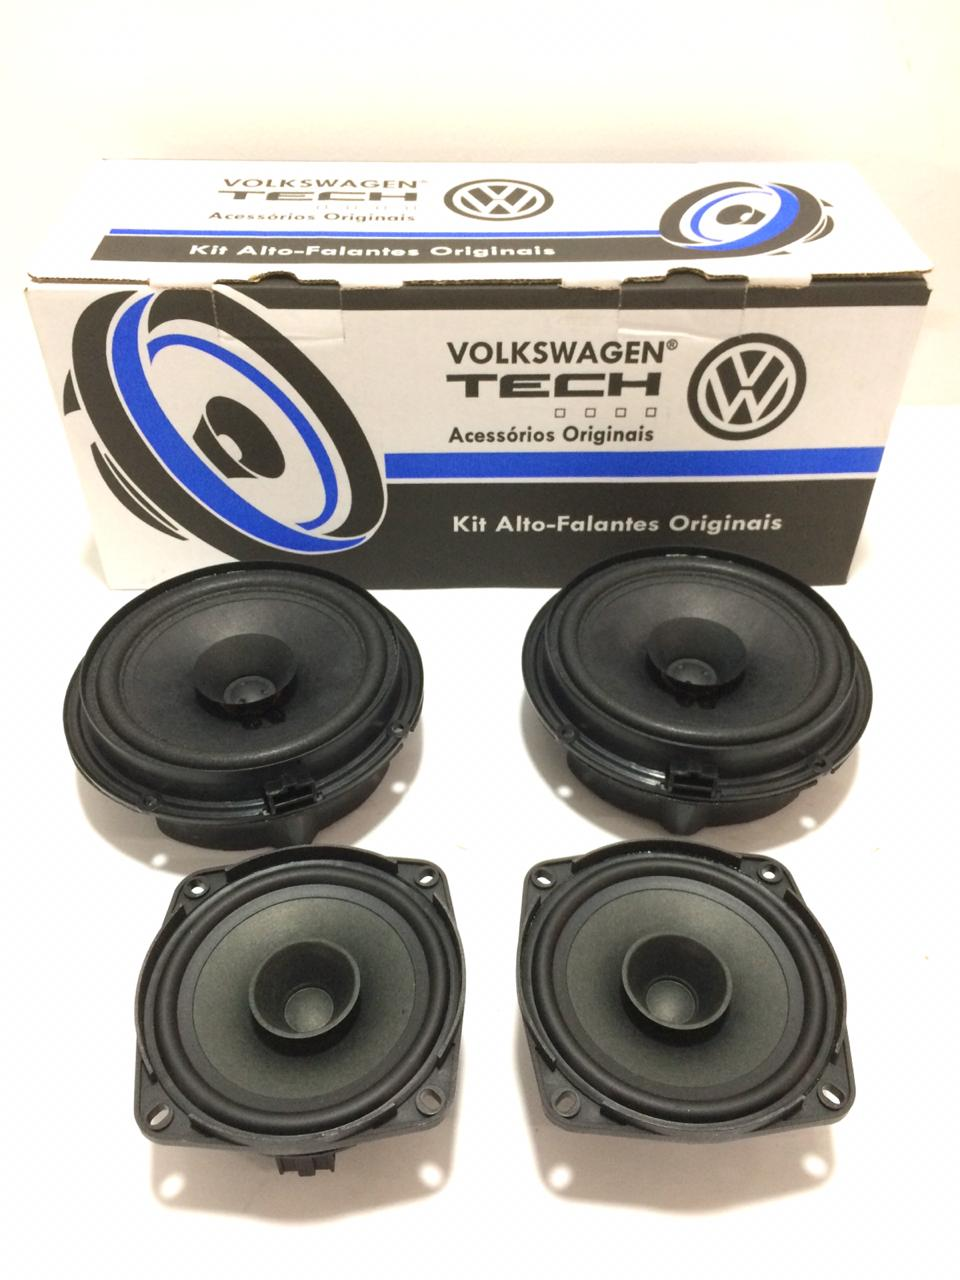 Kit Alto-Falante Original Vw Gol e Saveiro 5U0098609BB